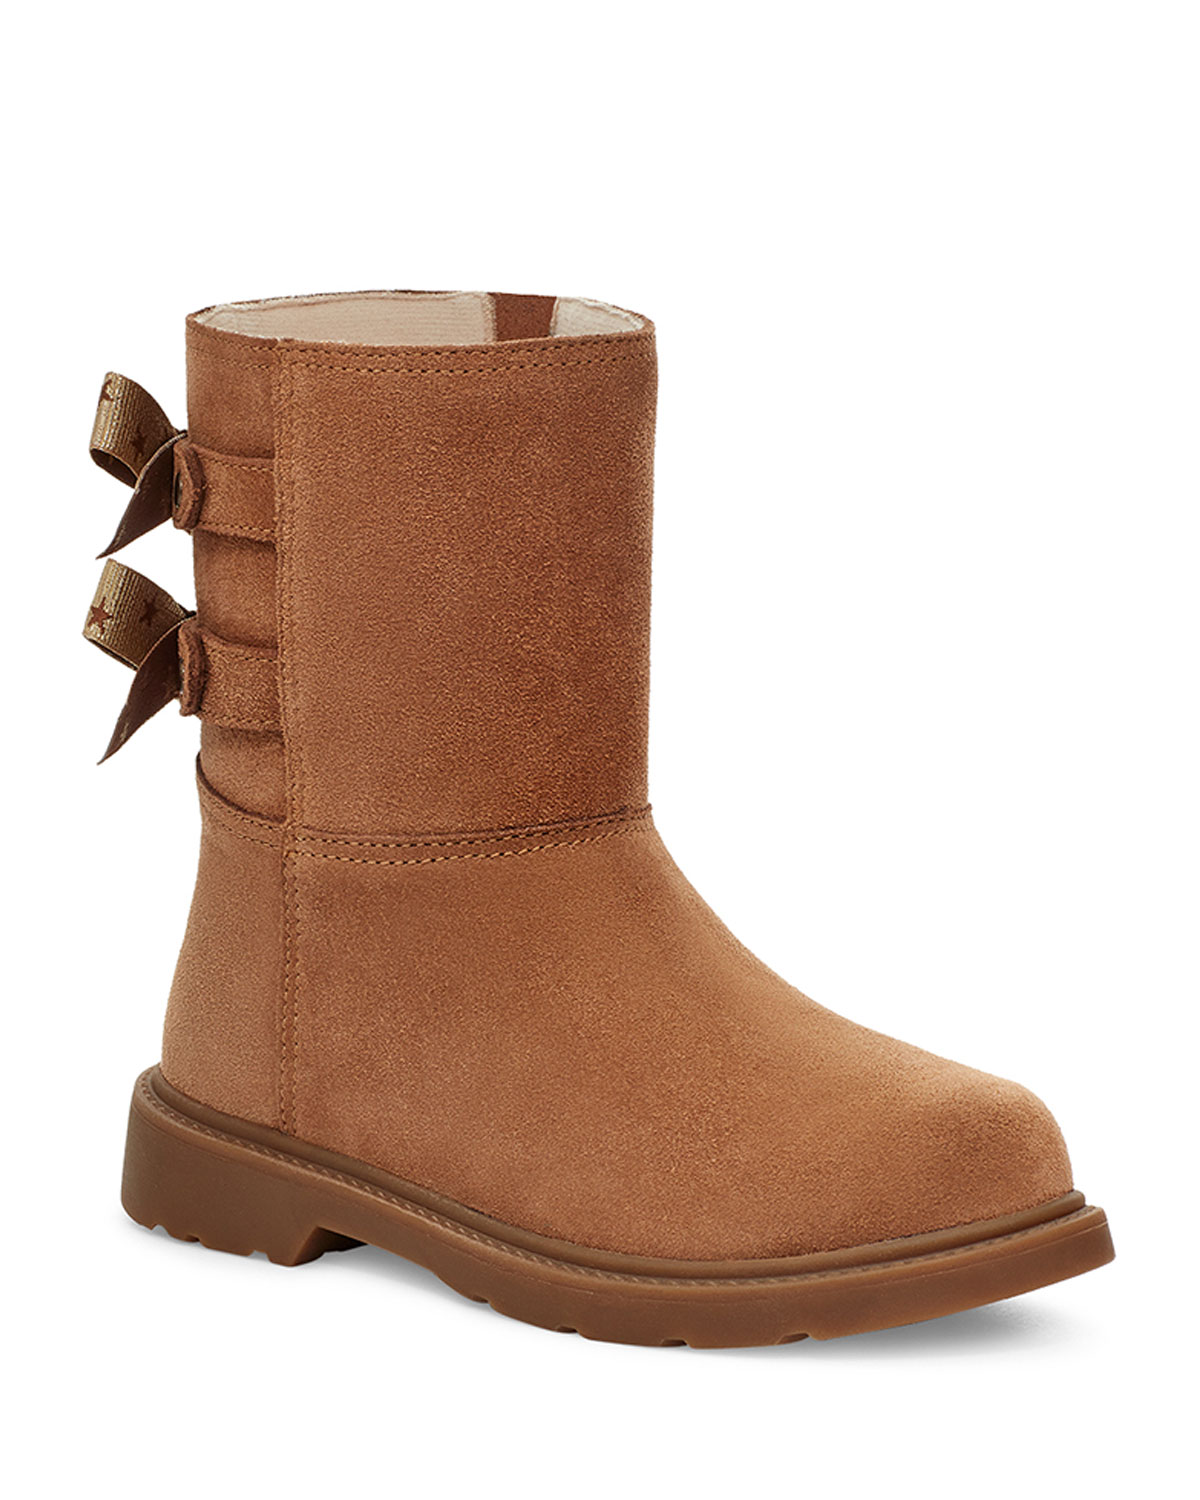 Ugg TILLEE SUEDE BOOTS, BABY/TODDLERS